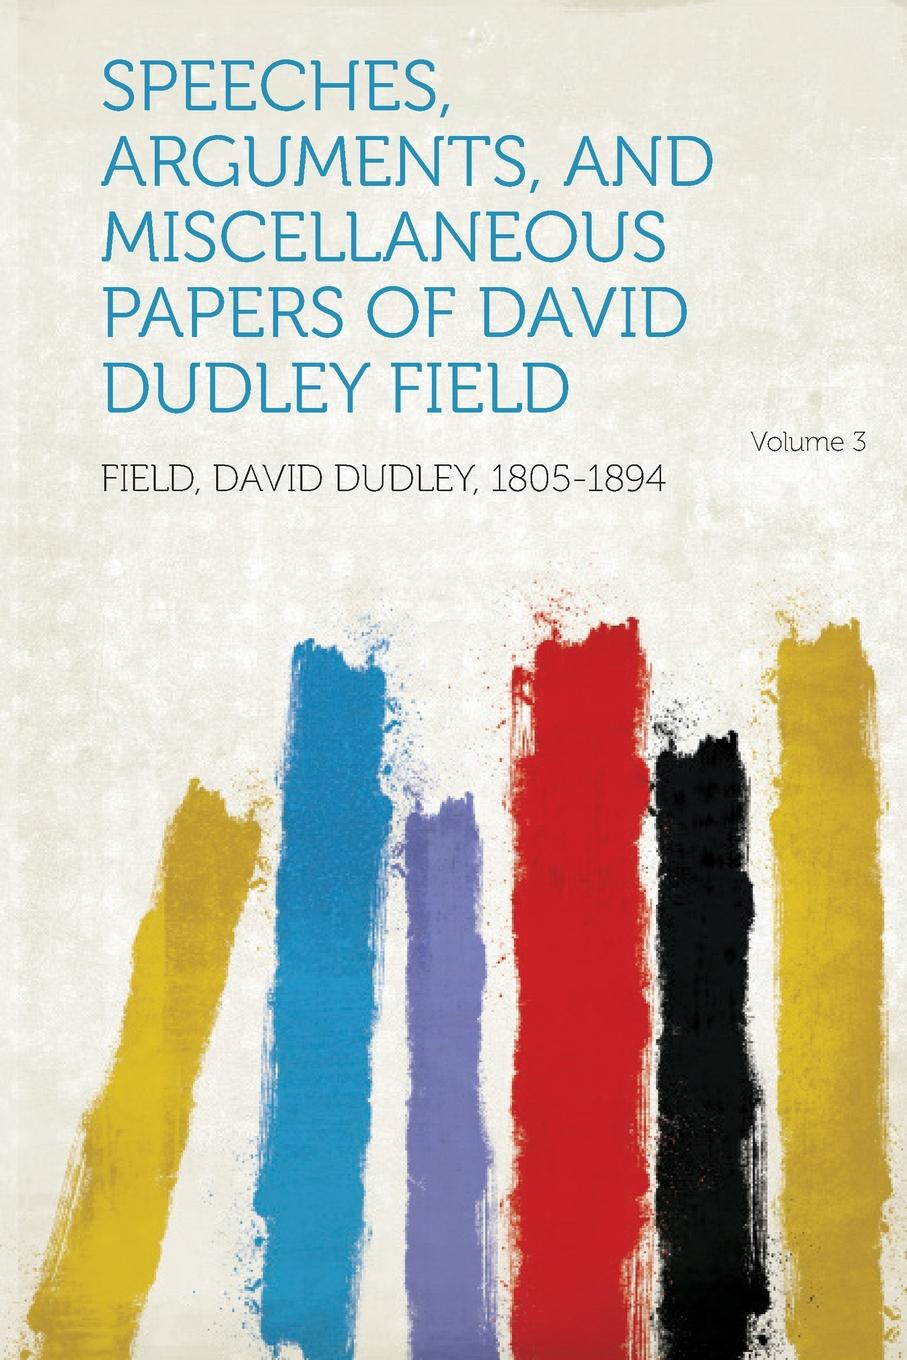 Field David Dudley 1805-1894 Speeches, Arguments, and Miscellaneous Papers of David Dudley Field Volume 3 field david dudley the vote that made the president